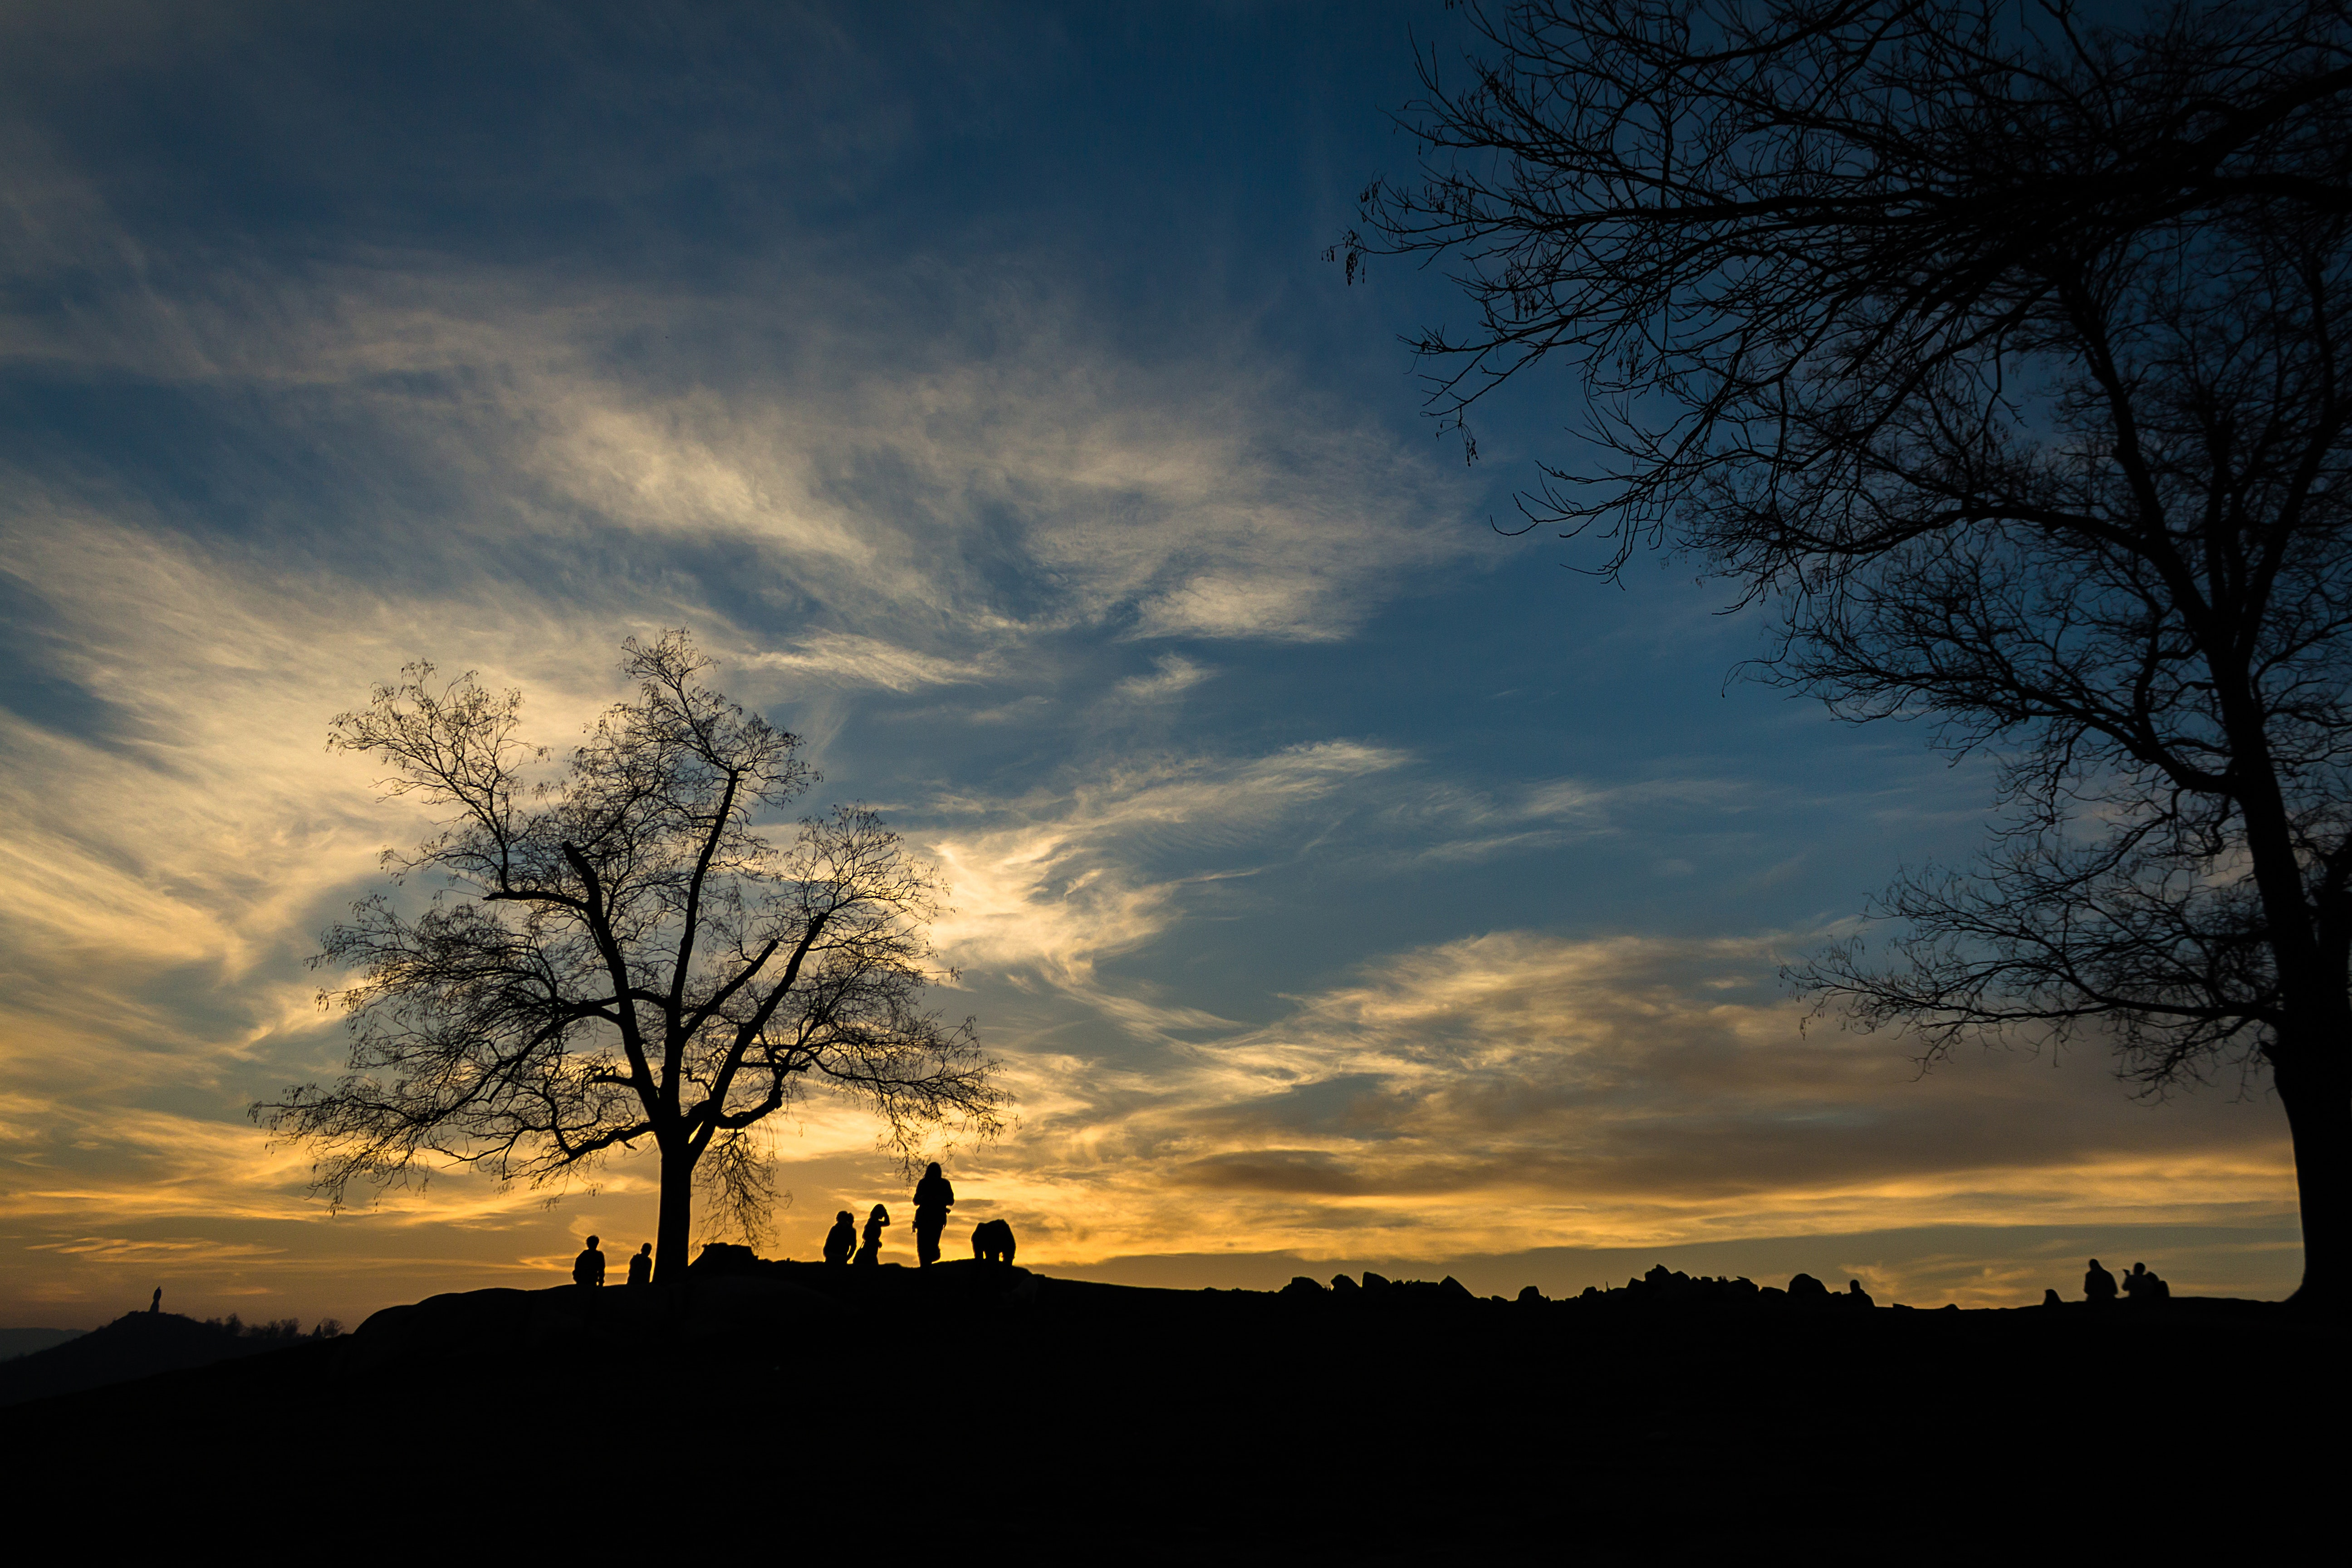 Silhouette of Person Near Bare Tree at Sunset, Clouds, Dark, Dawn, Dusk, HQ Photo